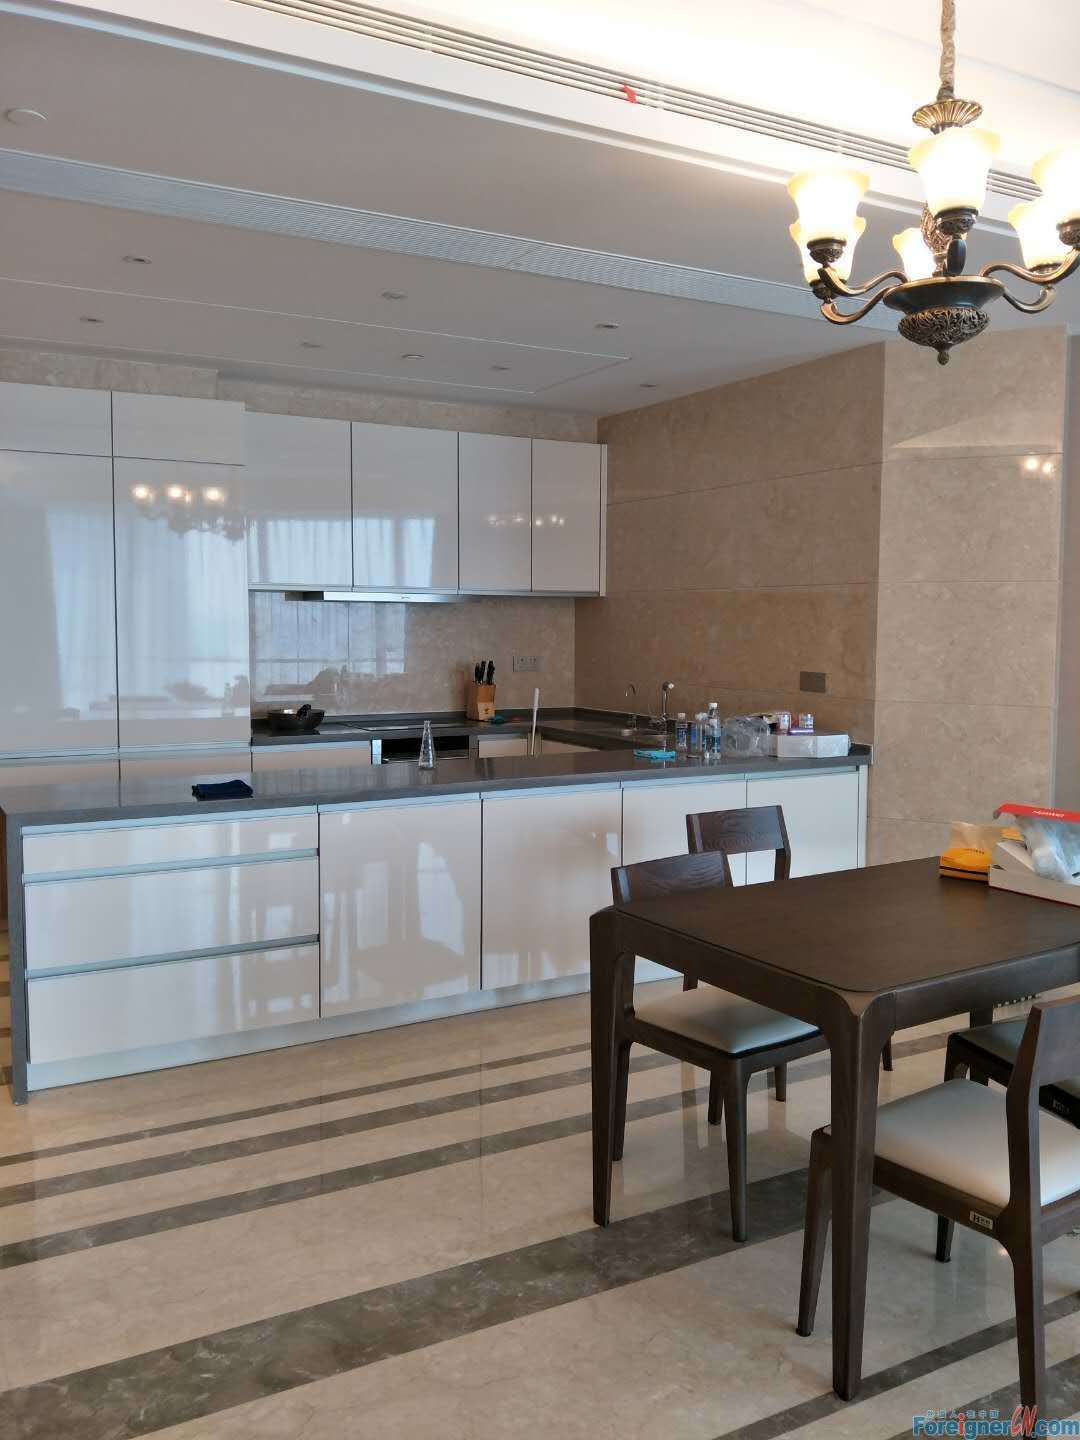 amazing suzhou center 2 big rooms apt 193 square with floor heating open kitchen